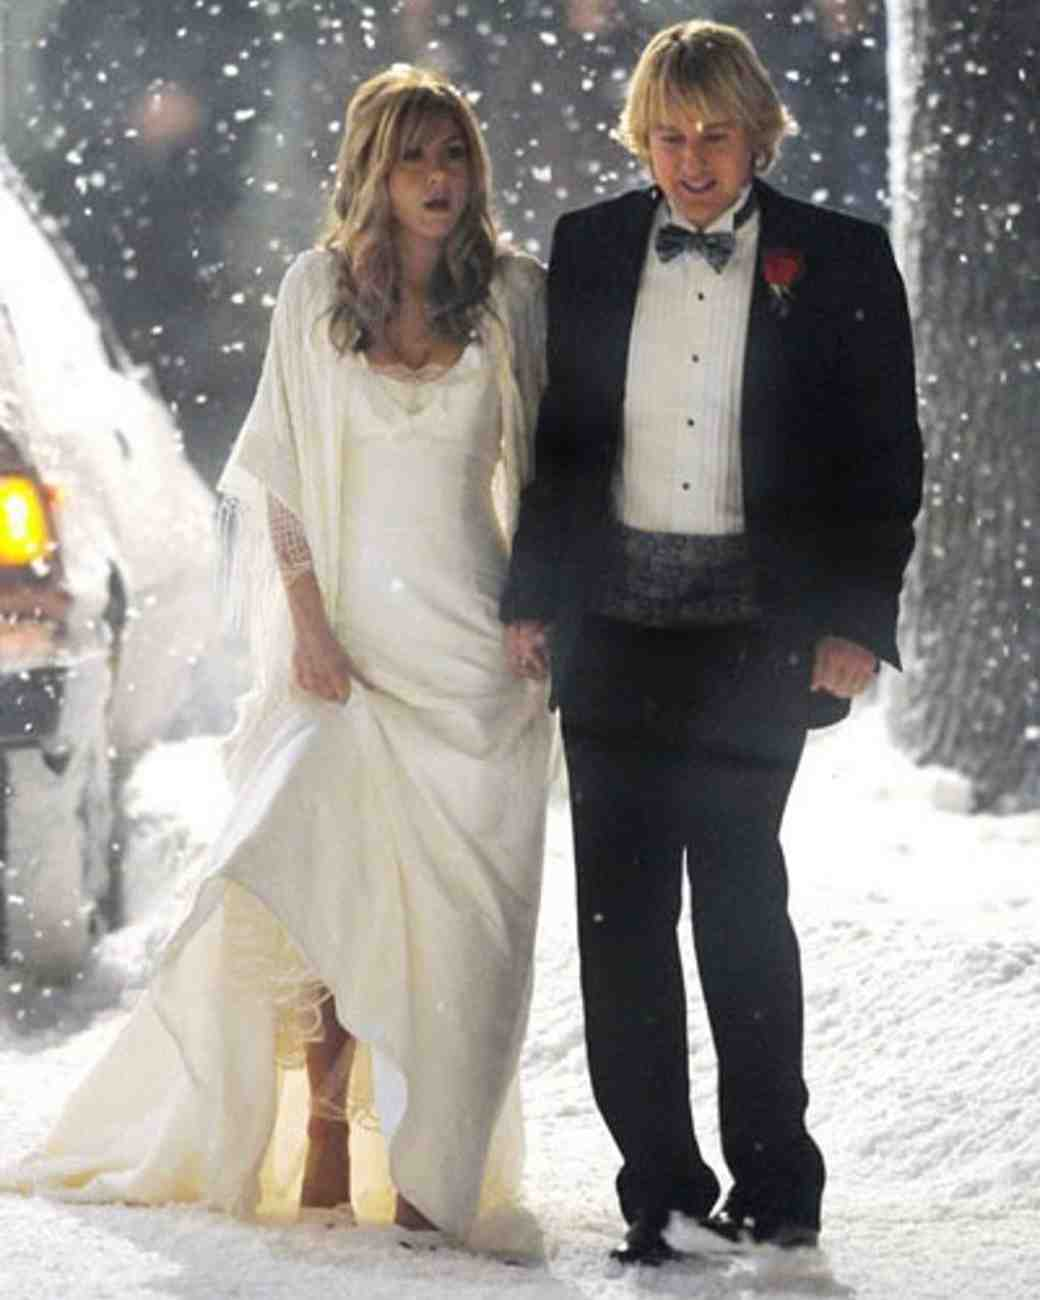 Marley and Me wedding dress